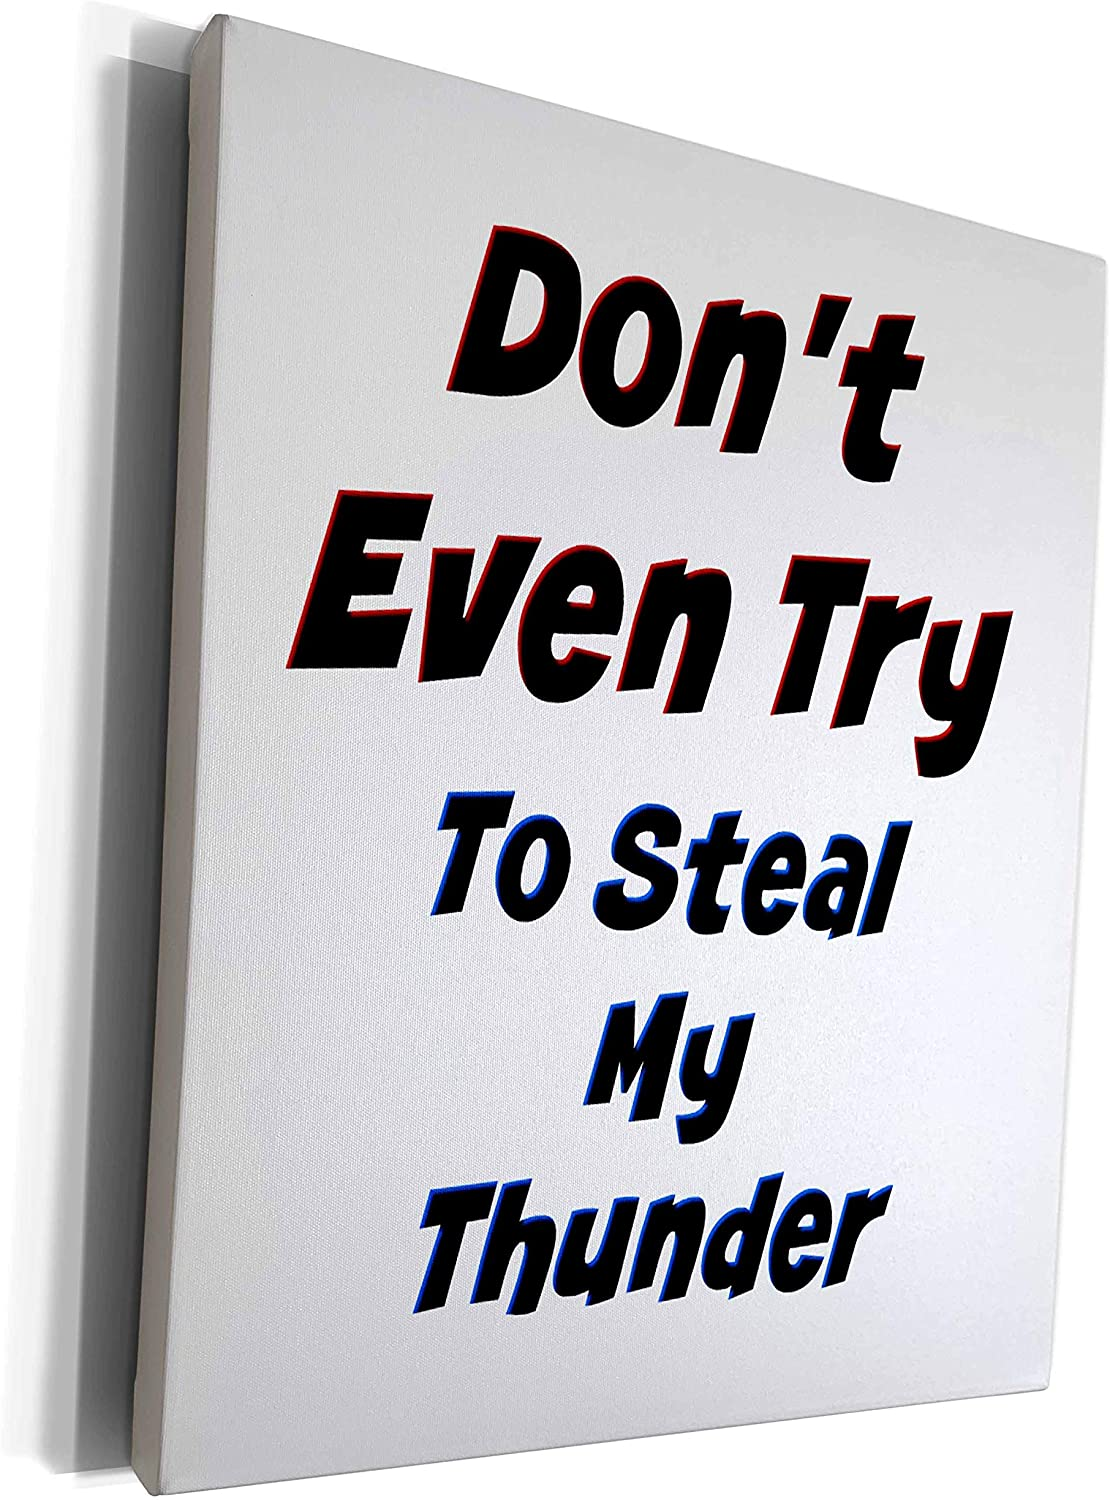 3dRose Carrie Merchant 3drose Image - Image Of Dont Even Try To Steal My Thunder - Museum Grade Canvas Wrap (cw_316700_1)